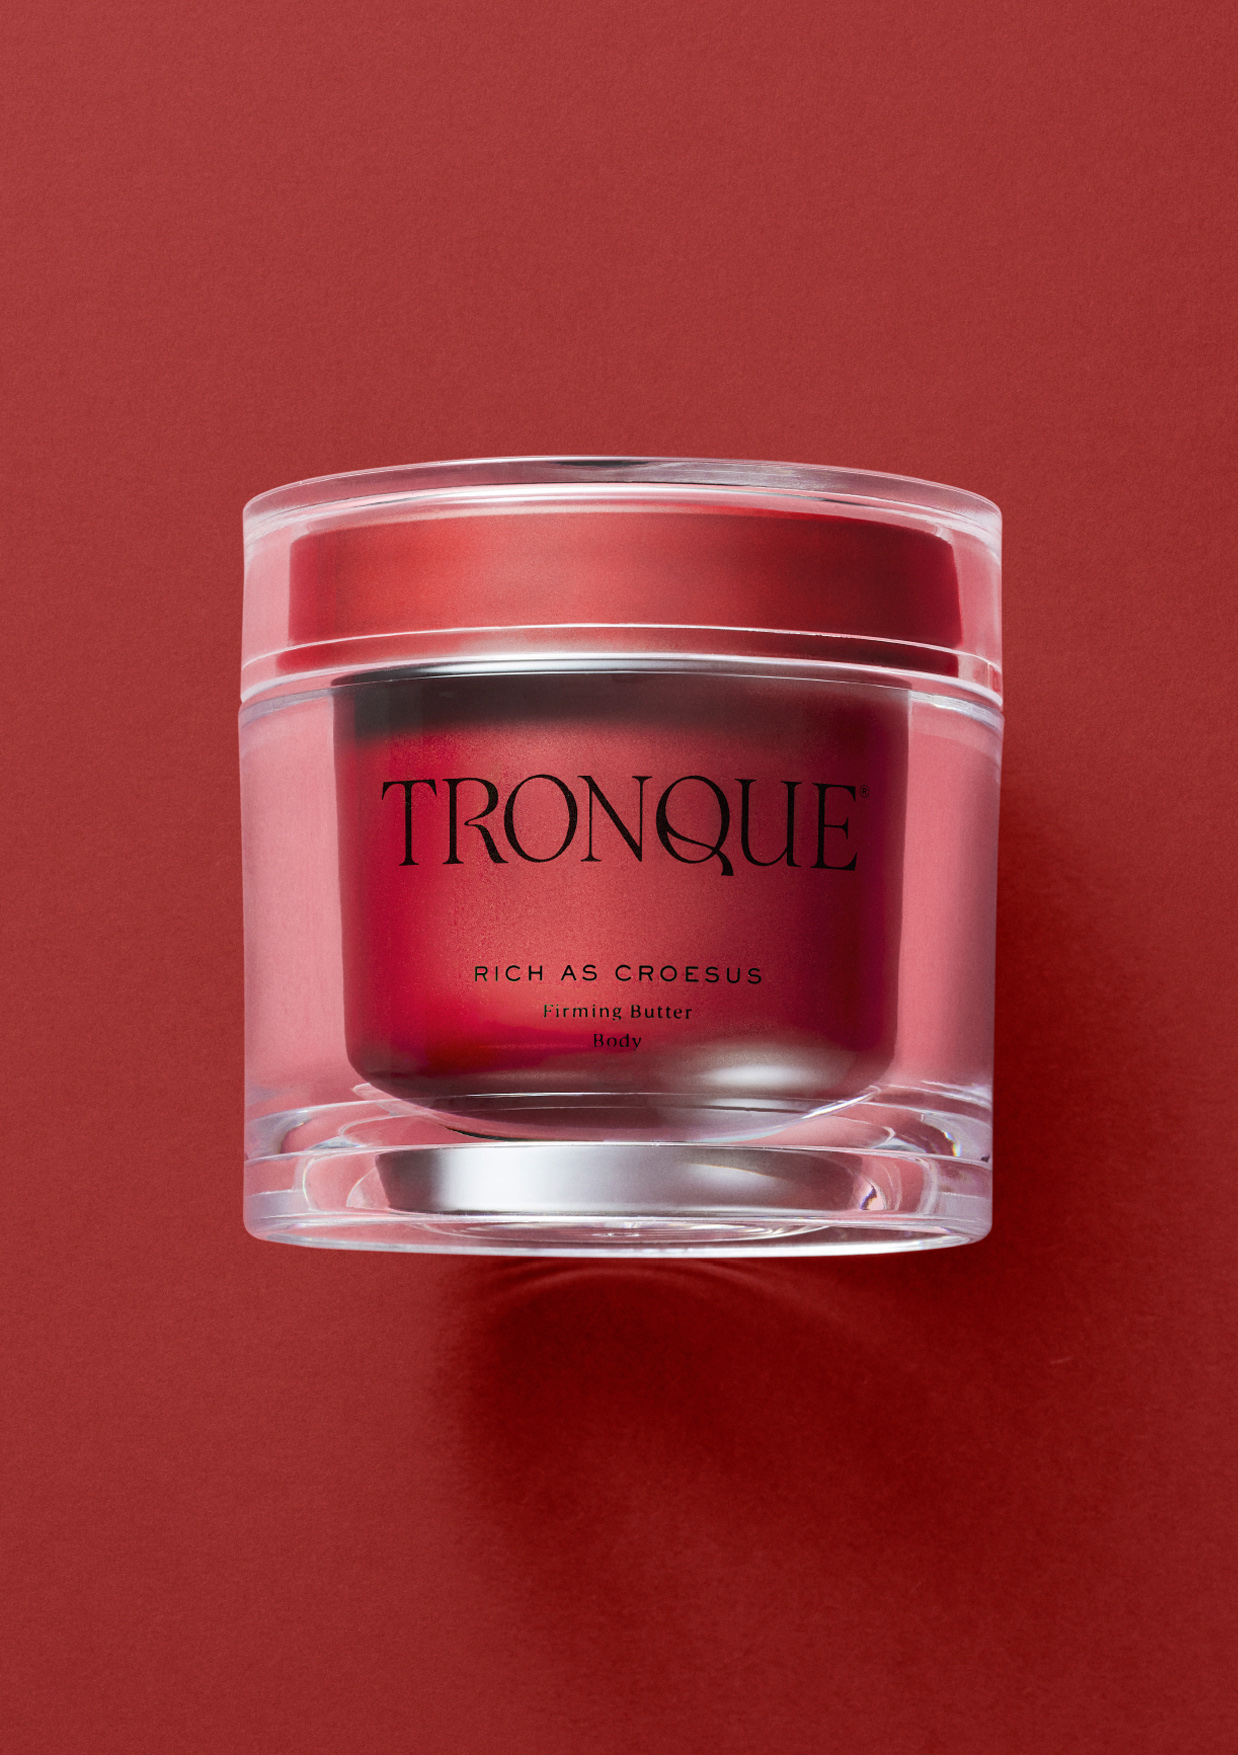 Tronque Skincare Brand and Packaging Design by Marx Design